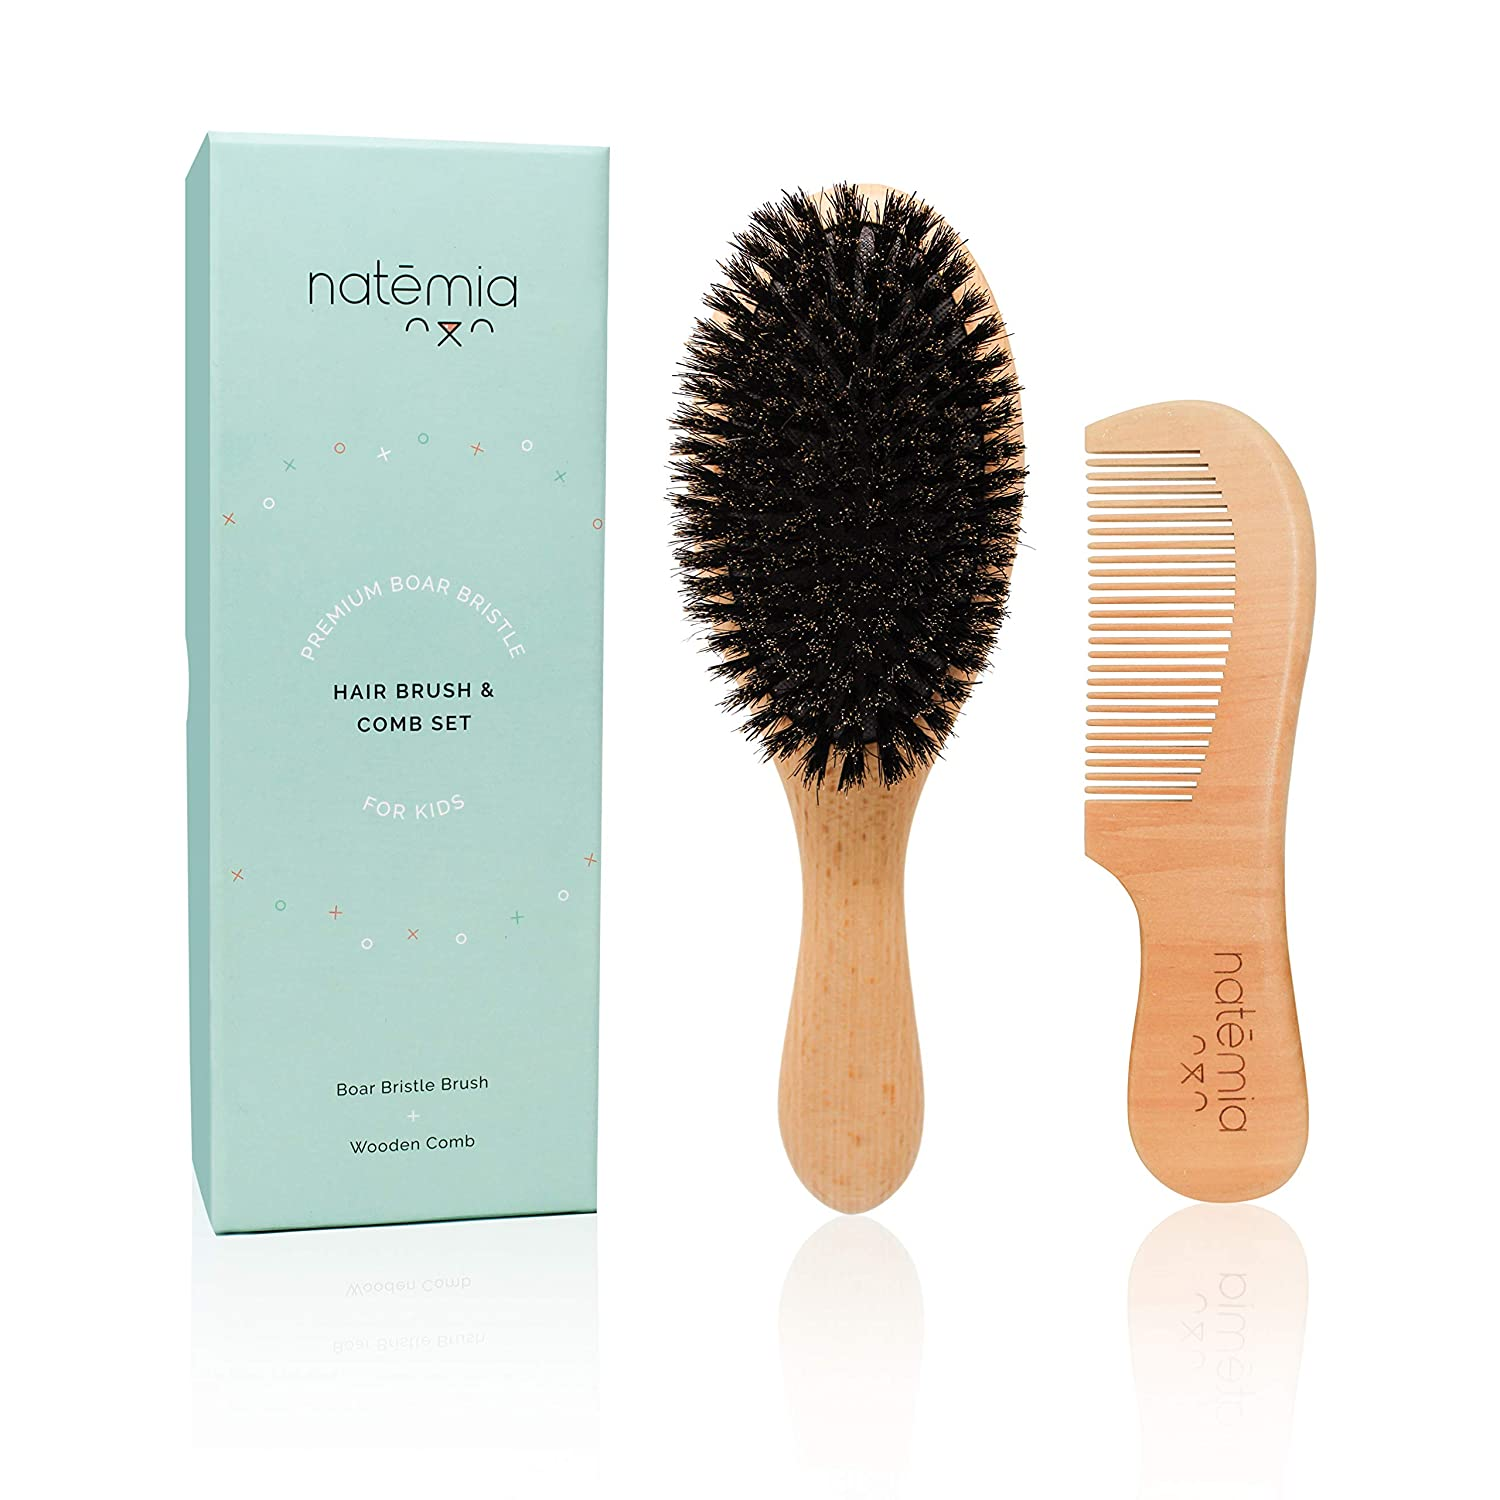 Natemia Boar Bristle Wooden Hair Brush and Comb Set for Women,Men and Kids - Ideal for Thin and Normal Hair - Adds Shine and Improves Hair Texture